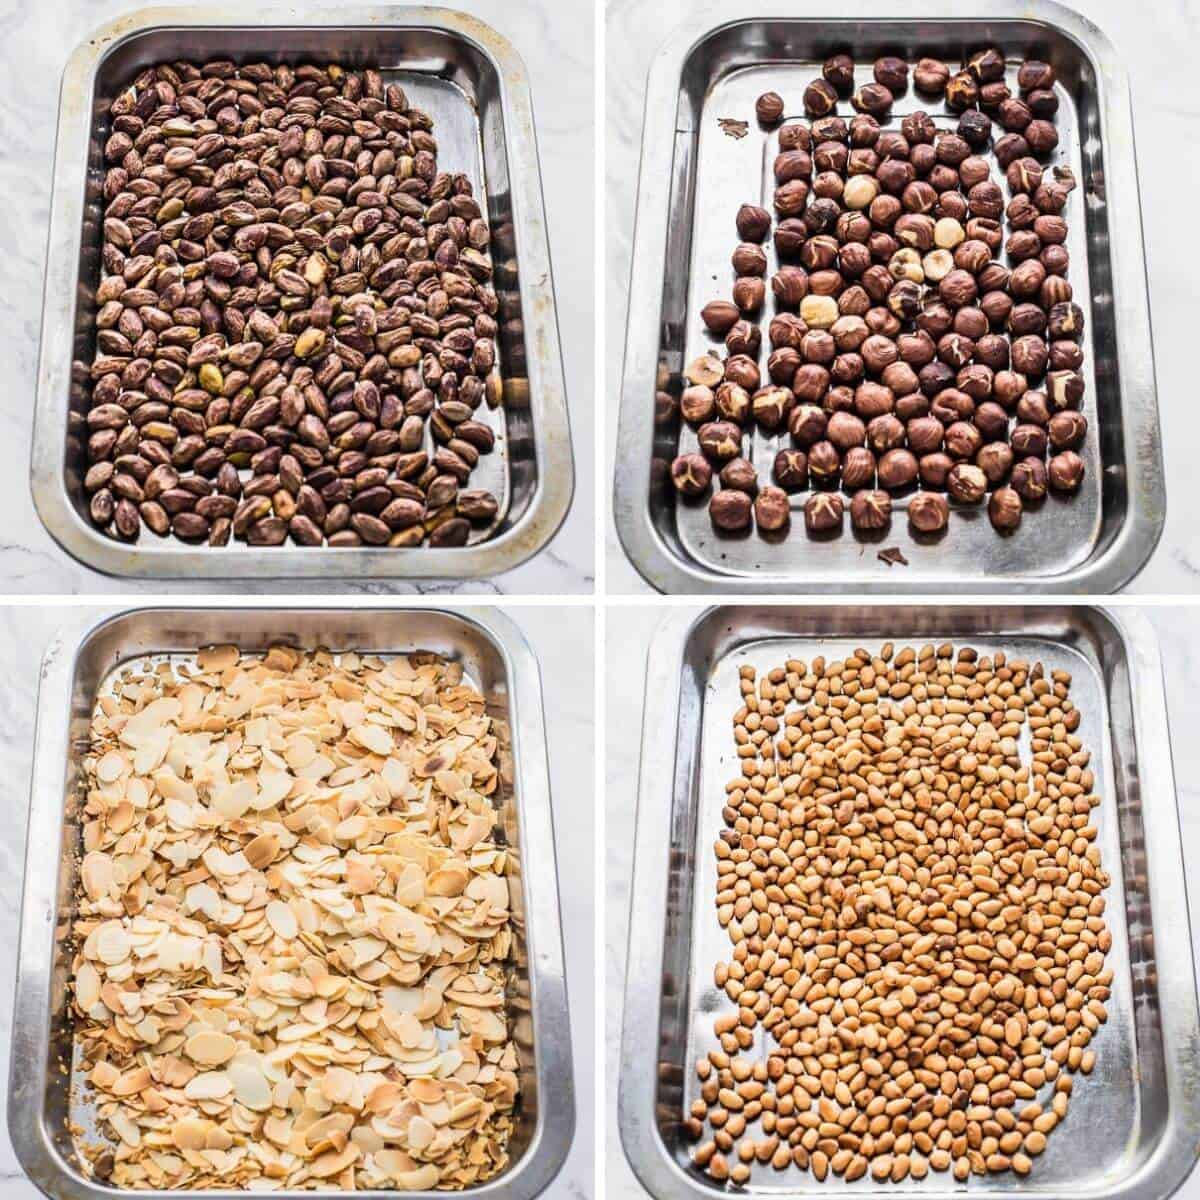 variety of roasted nuts used in the recipe